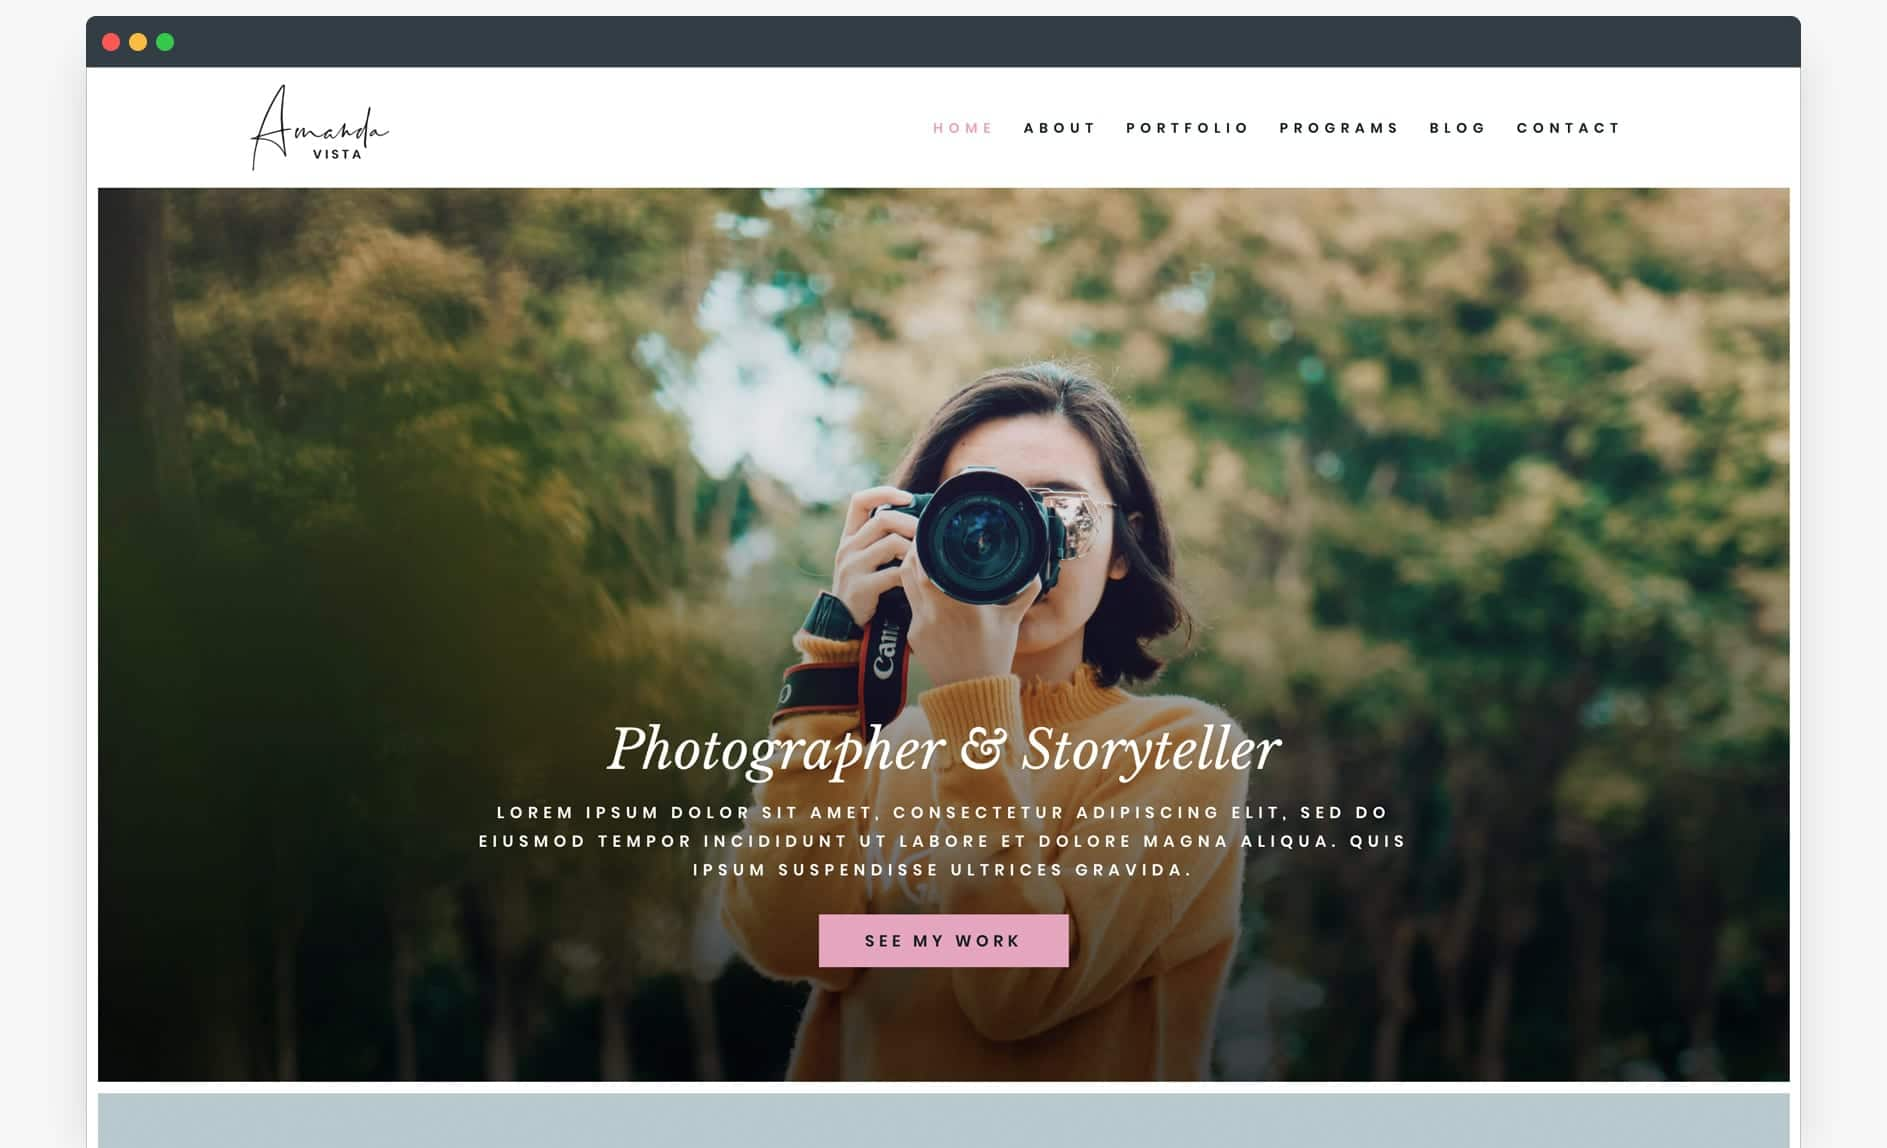 Website Template - The Photographer